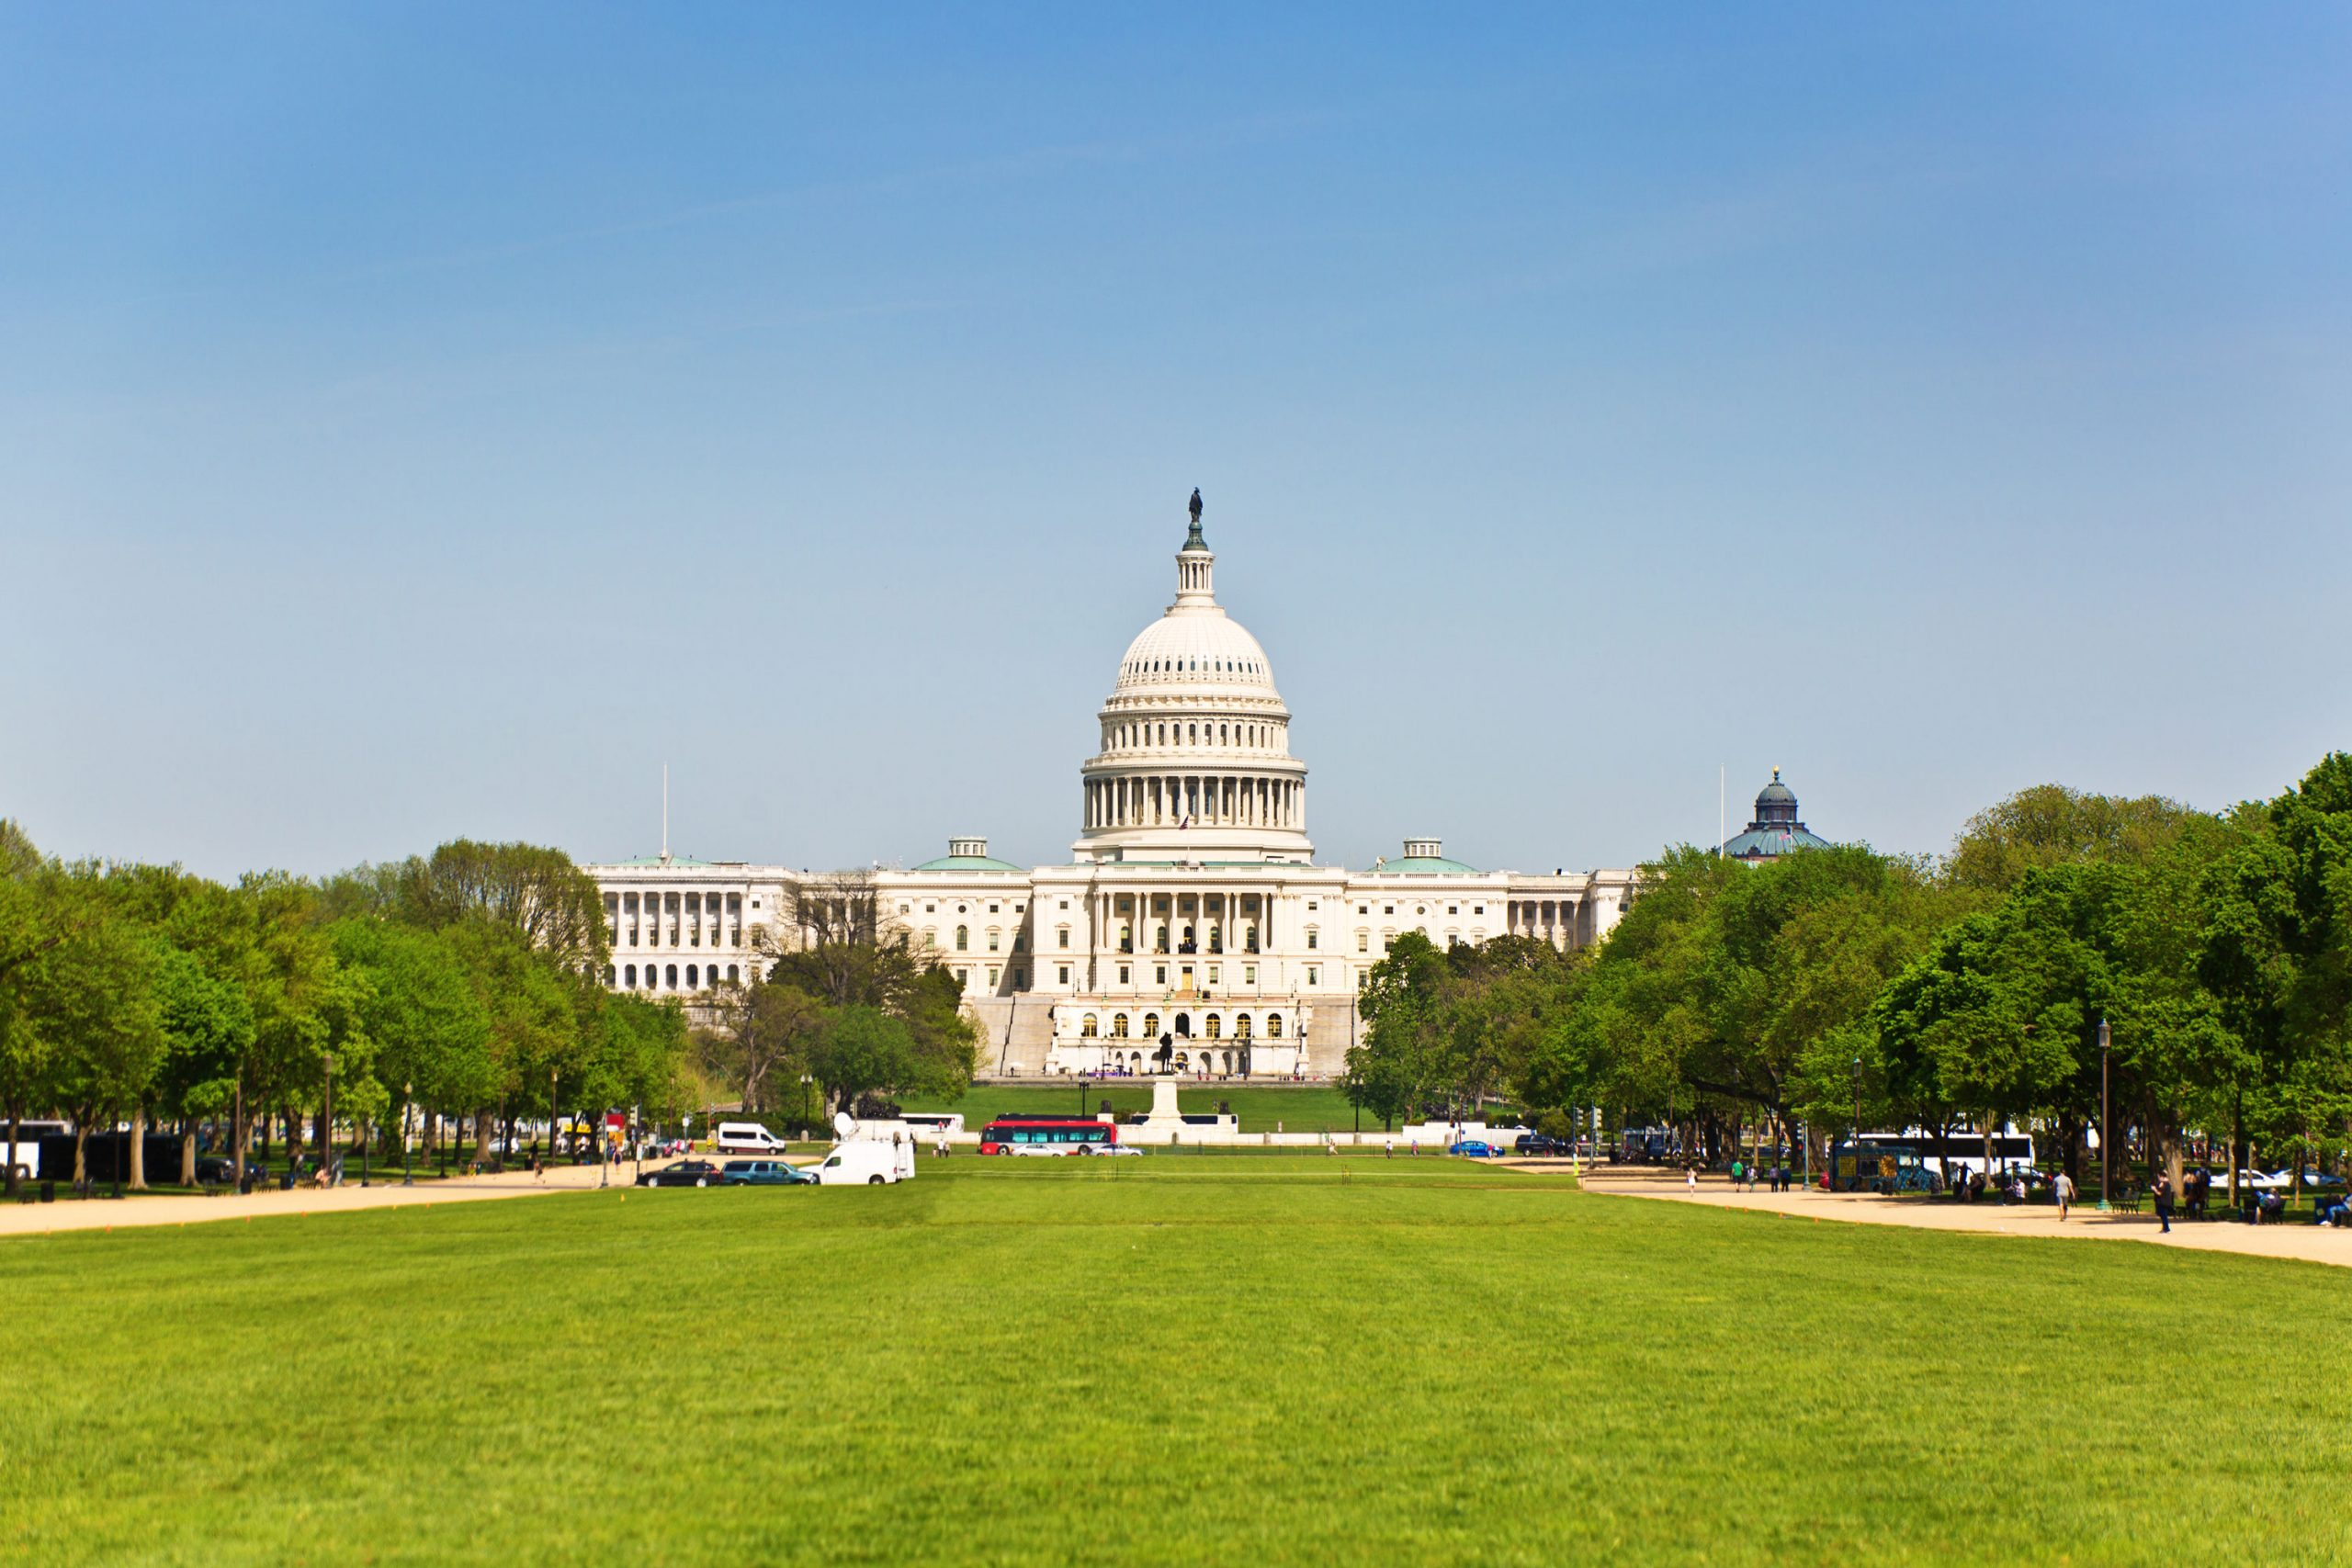 IR 'On the Road' Conference, Washington D.C. May 2022